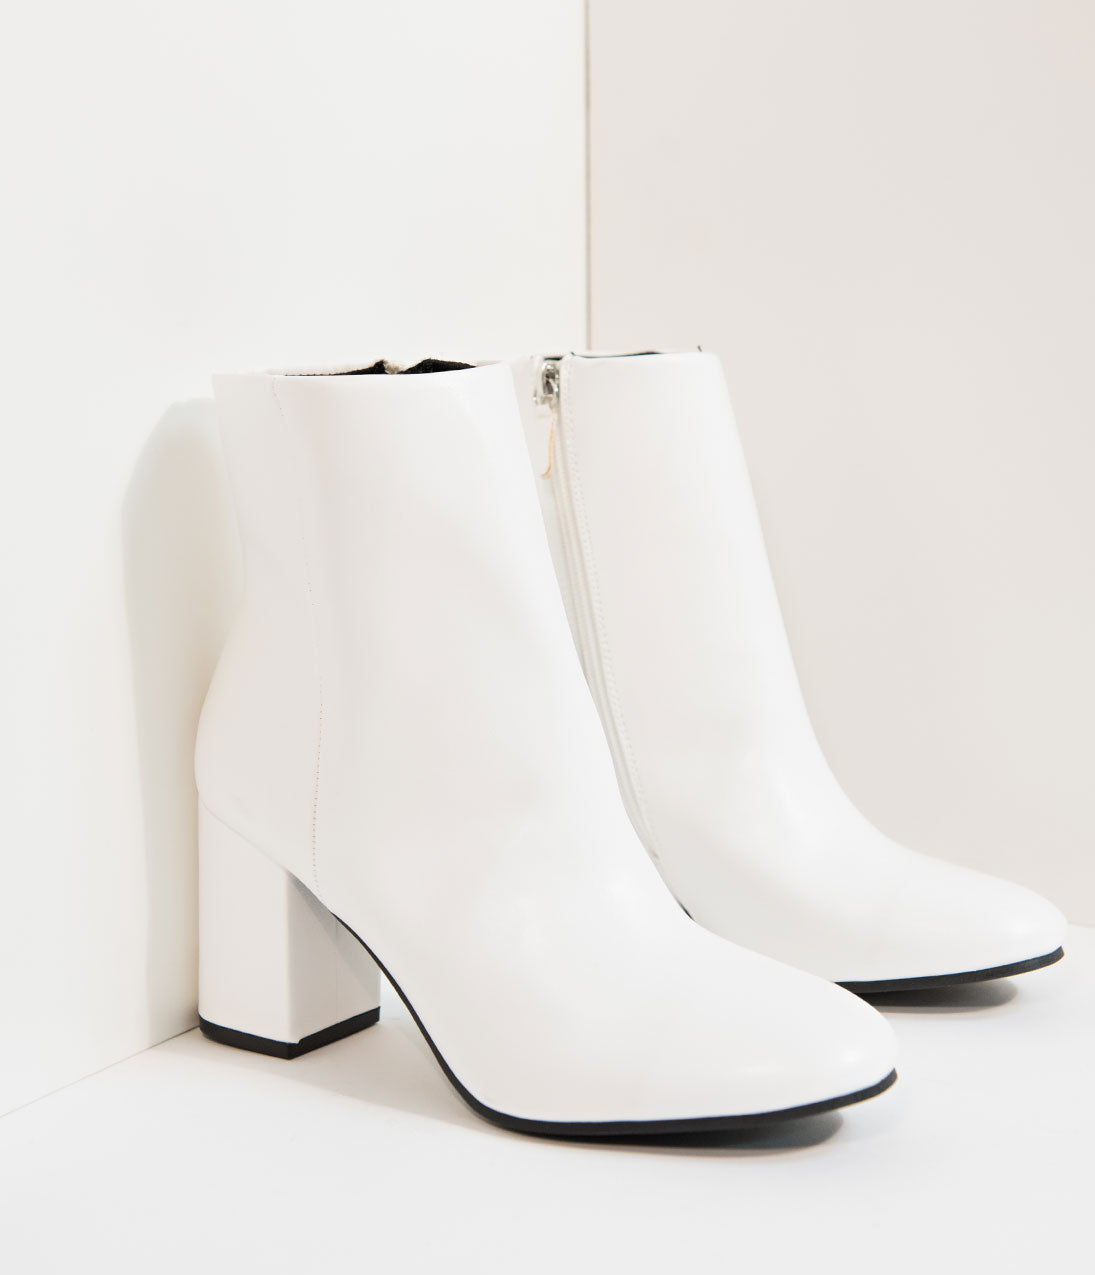 Retro Boots, Granny Boots, 70s Boots Retro Style White Leatherette Mod Ankle Boots $42.00 AT vintagedancer.com